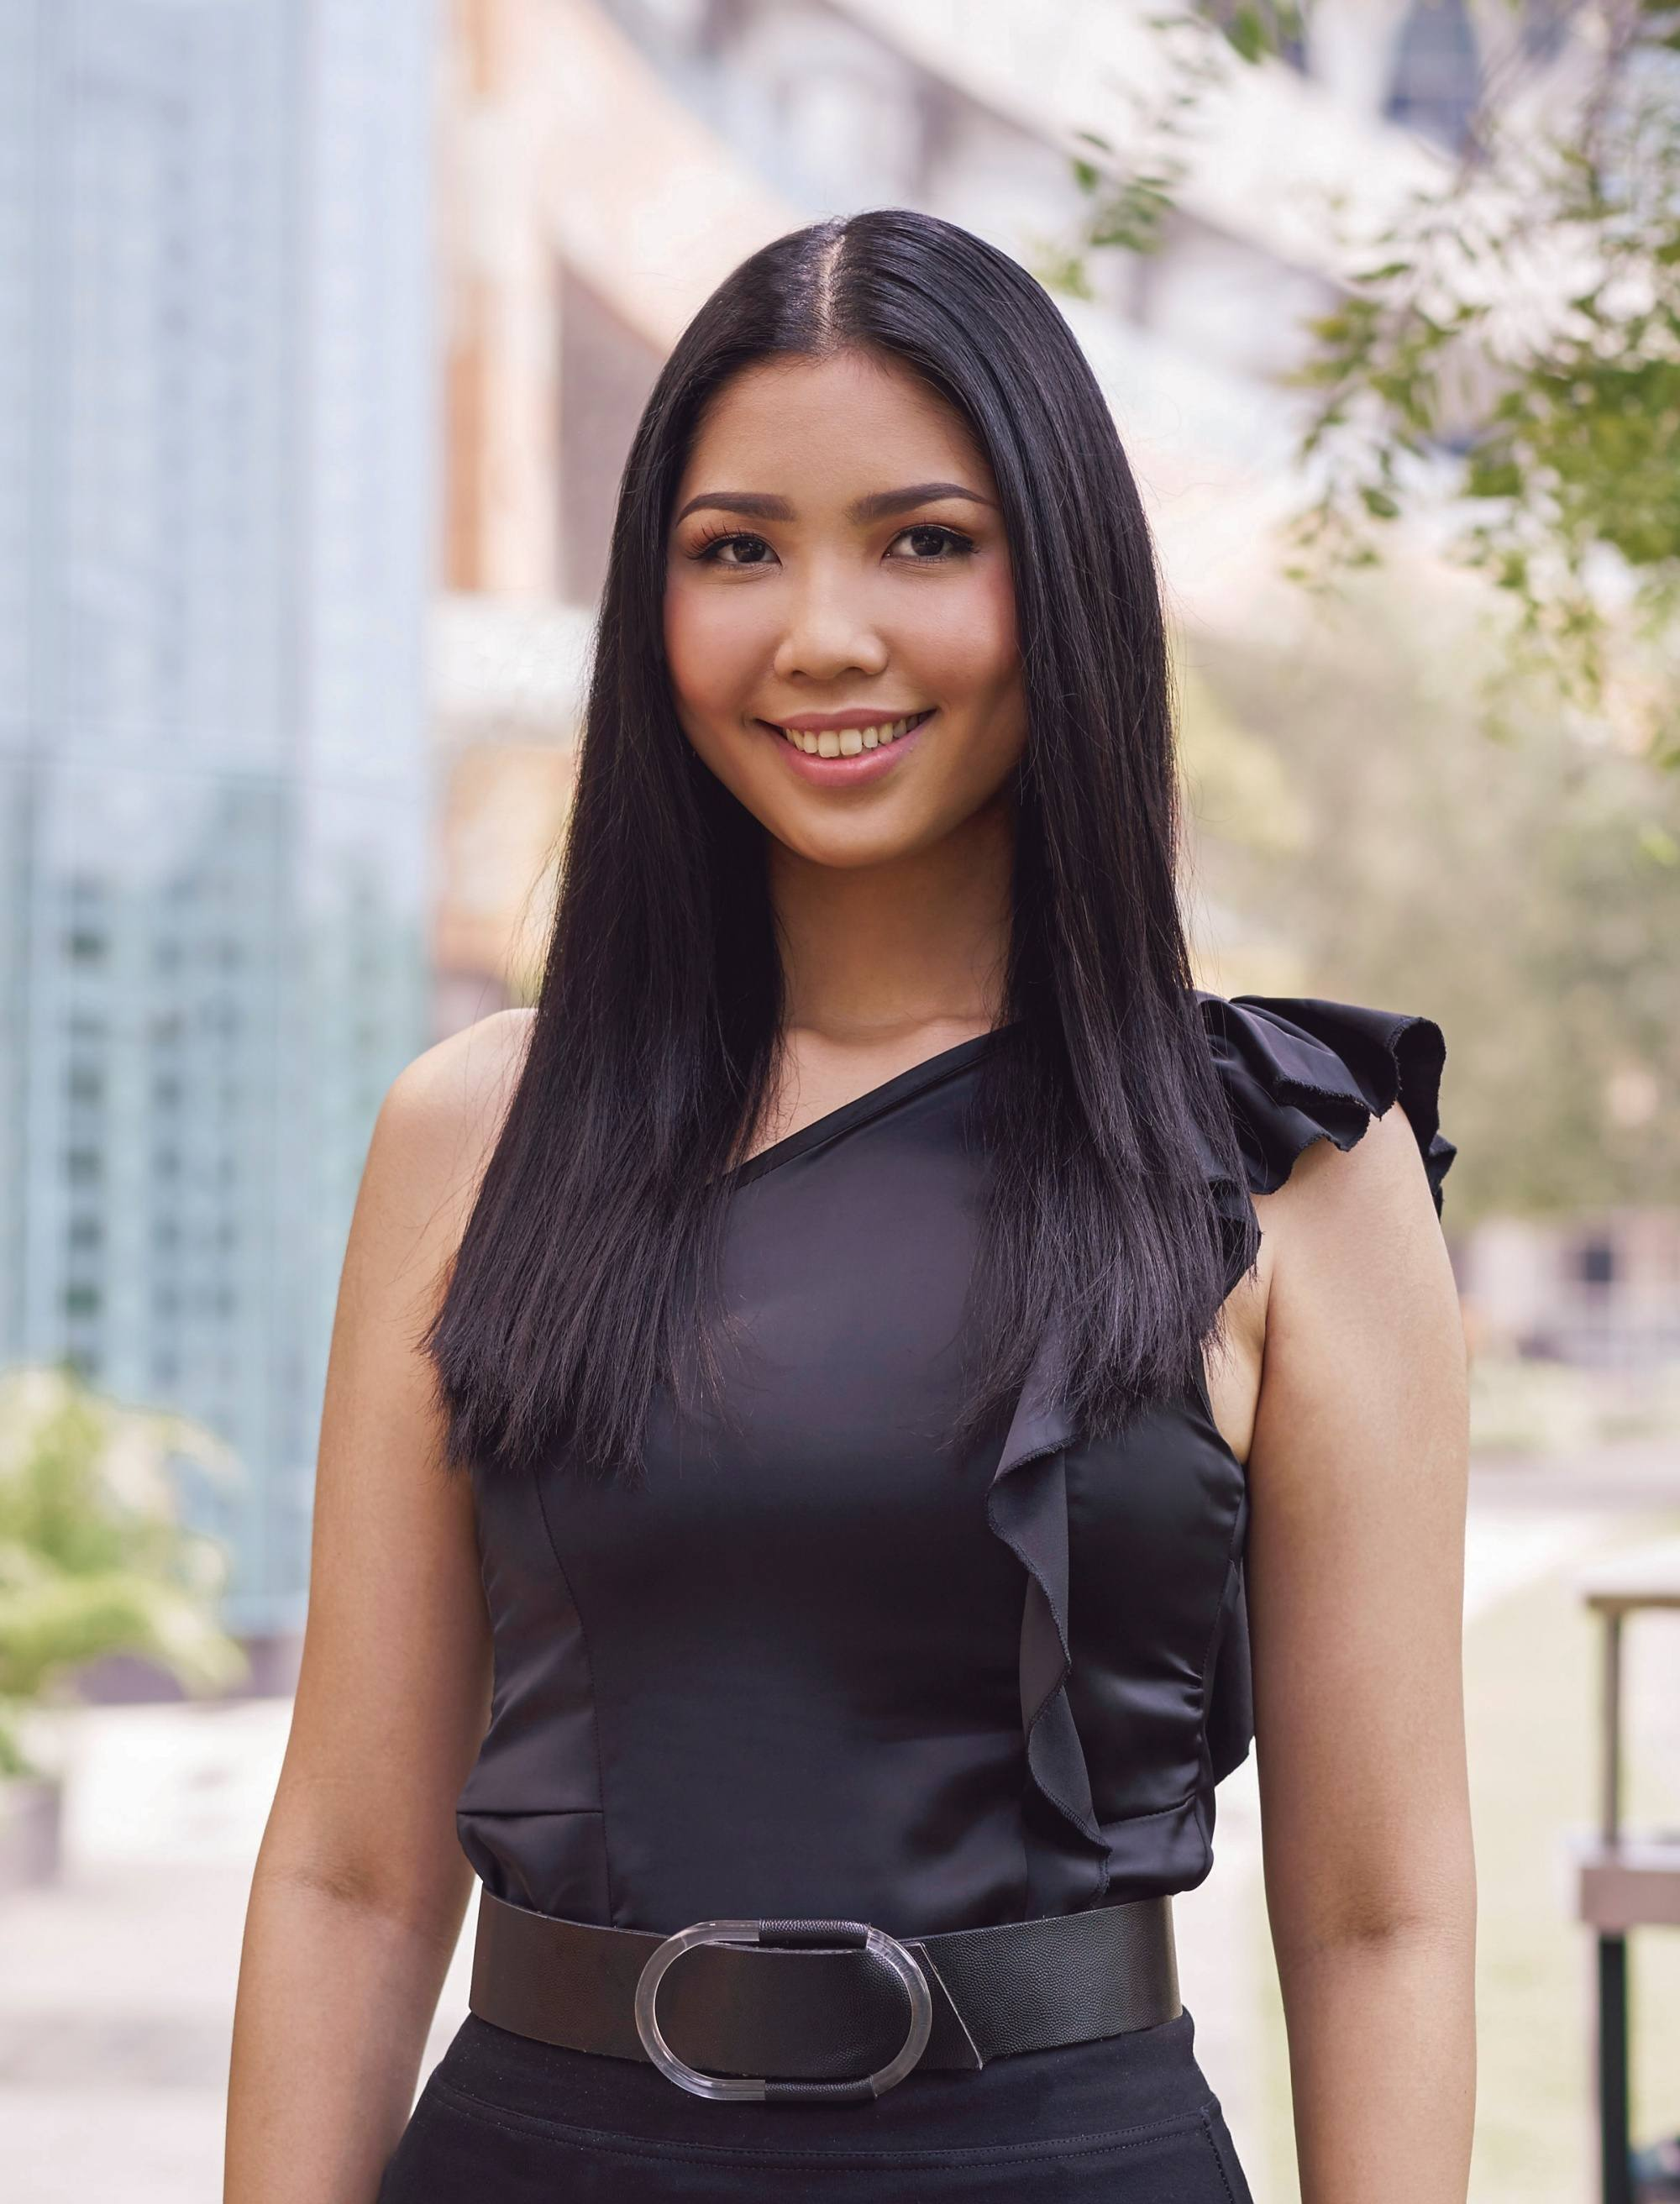 Graduation hairstyles: Asian woman with long dark straight hair smiling